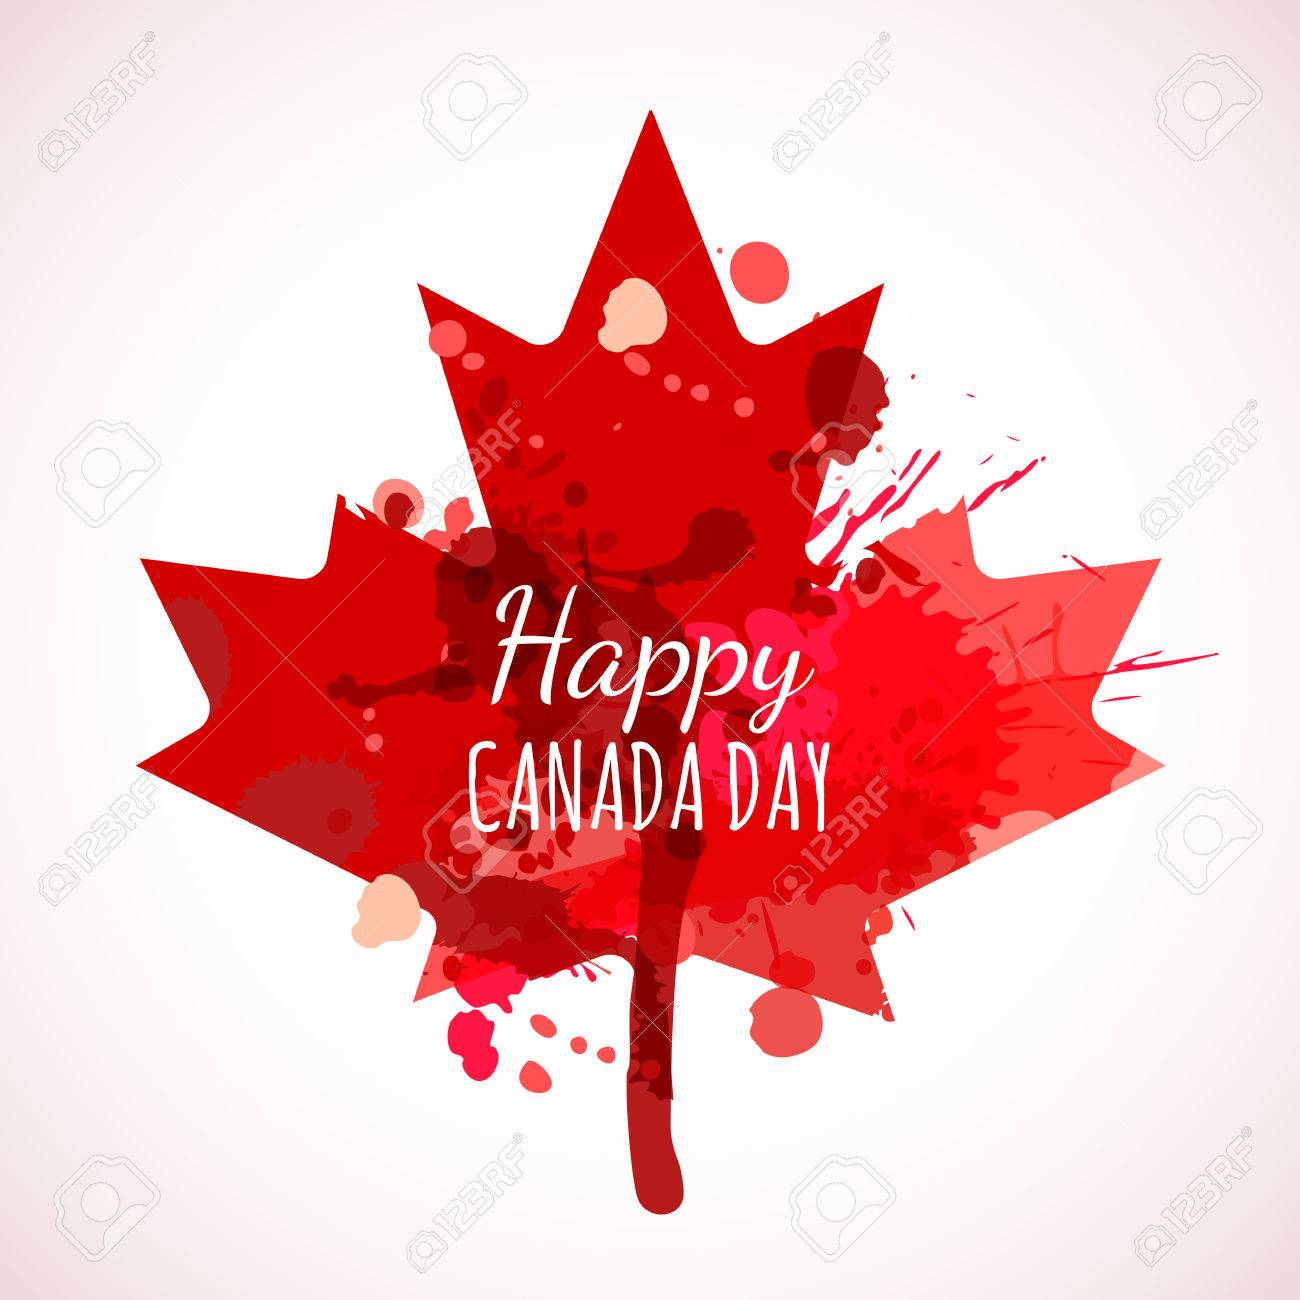 happy canada day watercolor background holiday poster with red